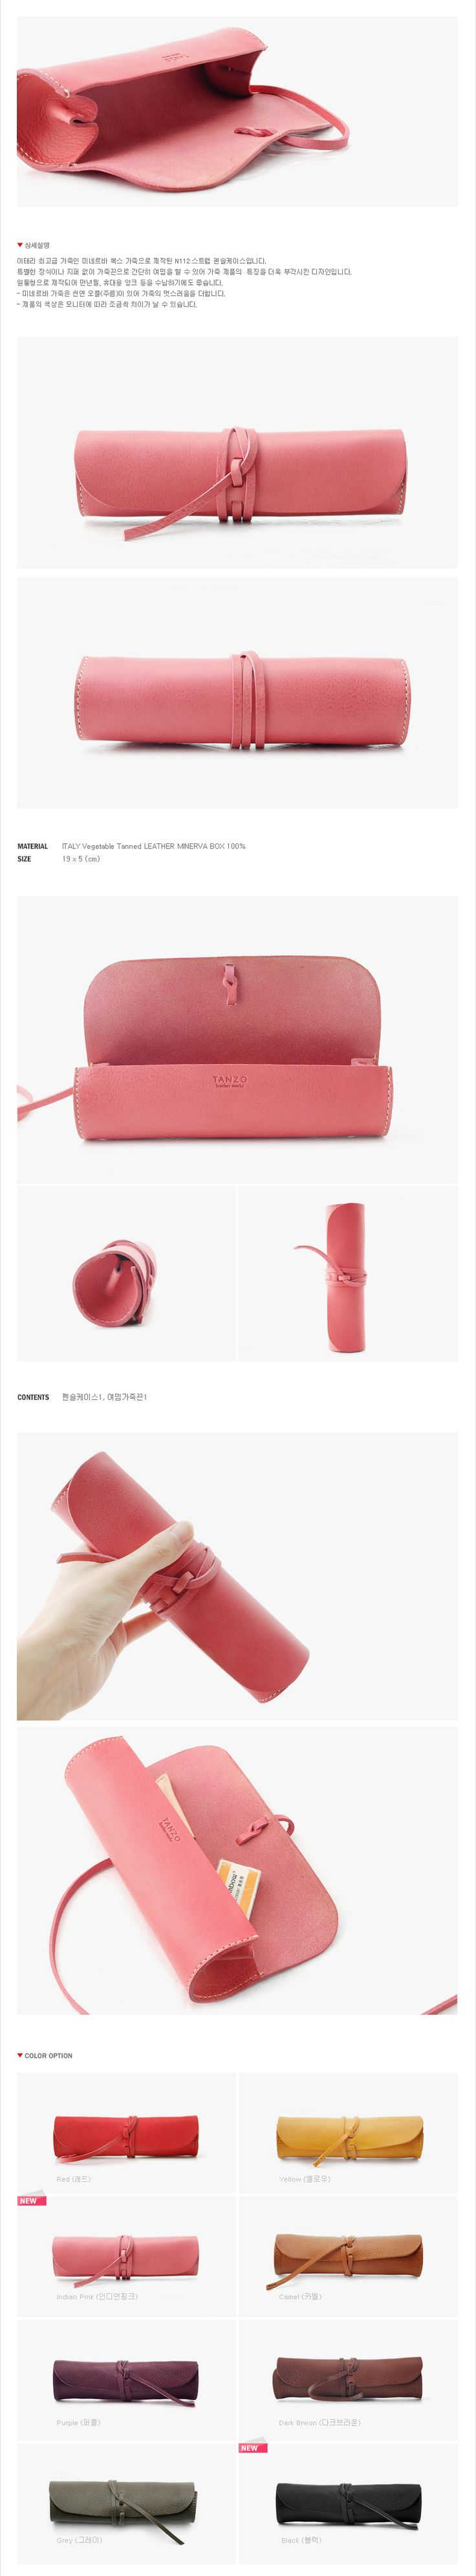 TANZO pencil case (could totally make this as a rad gift)